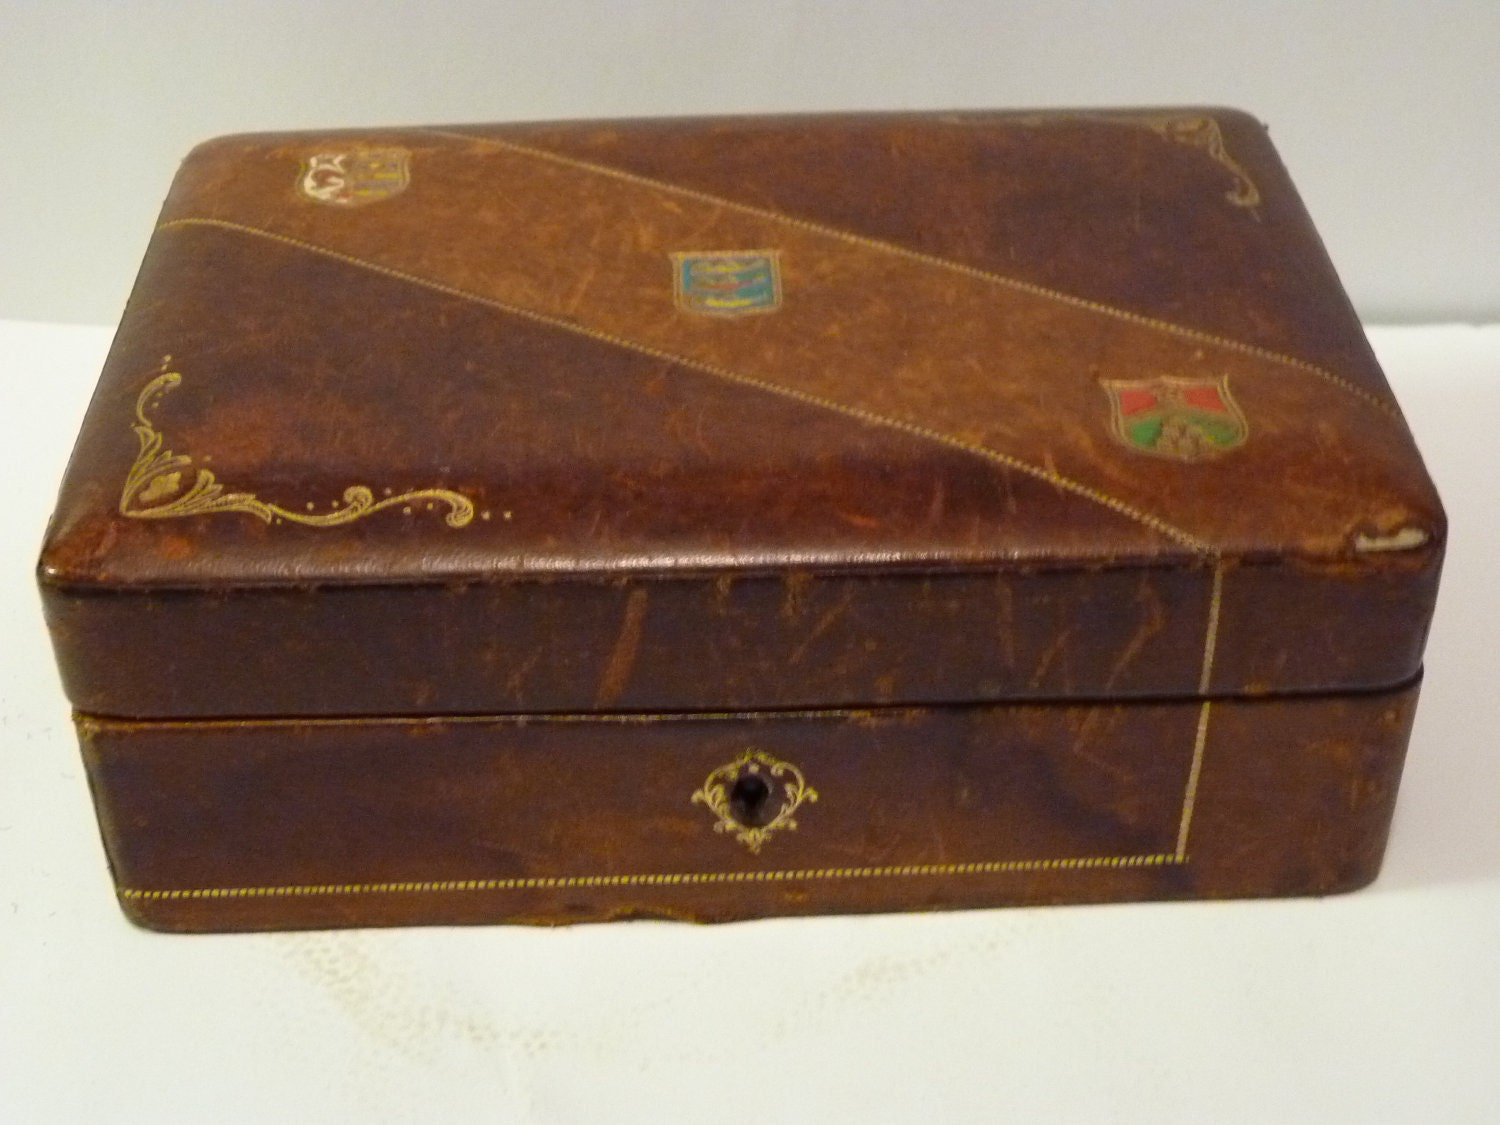 Vintage Italian Leather Box - Fatto a Mano Antiques